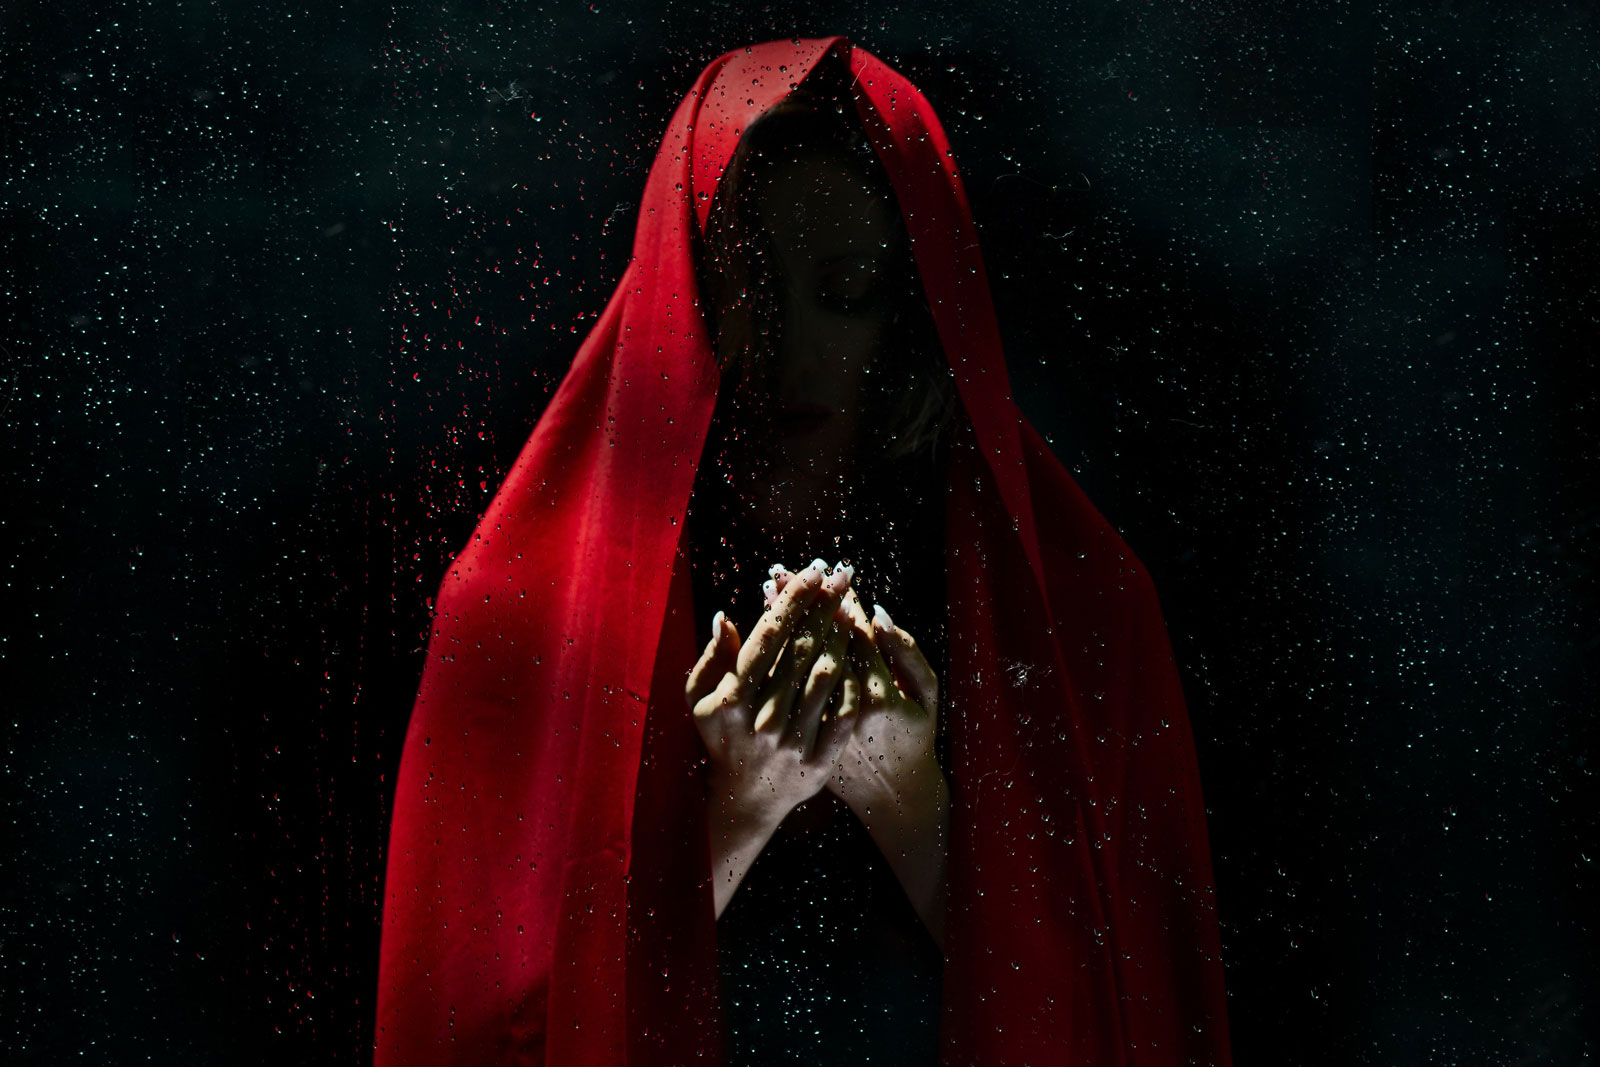 A woman with a red cloak draped over her head. A tribute to mrBallen.